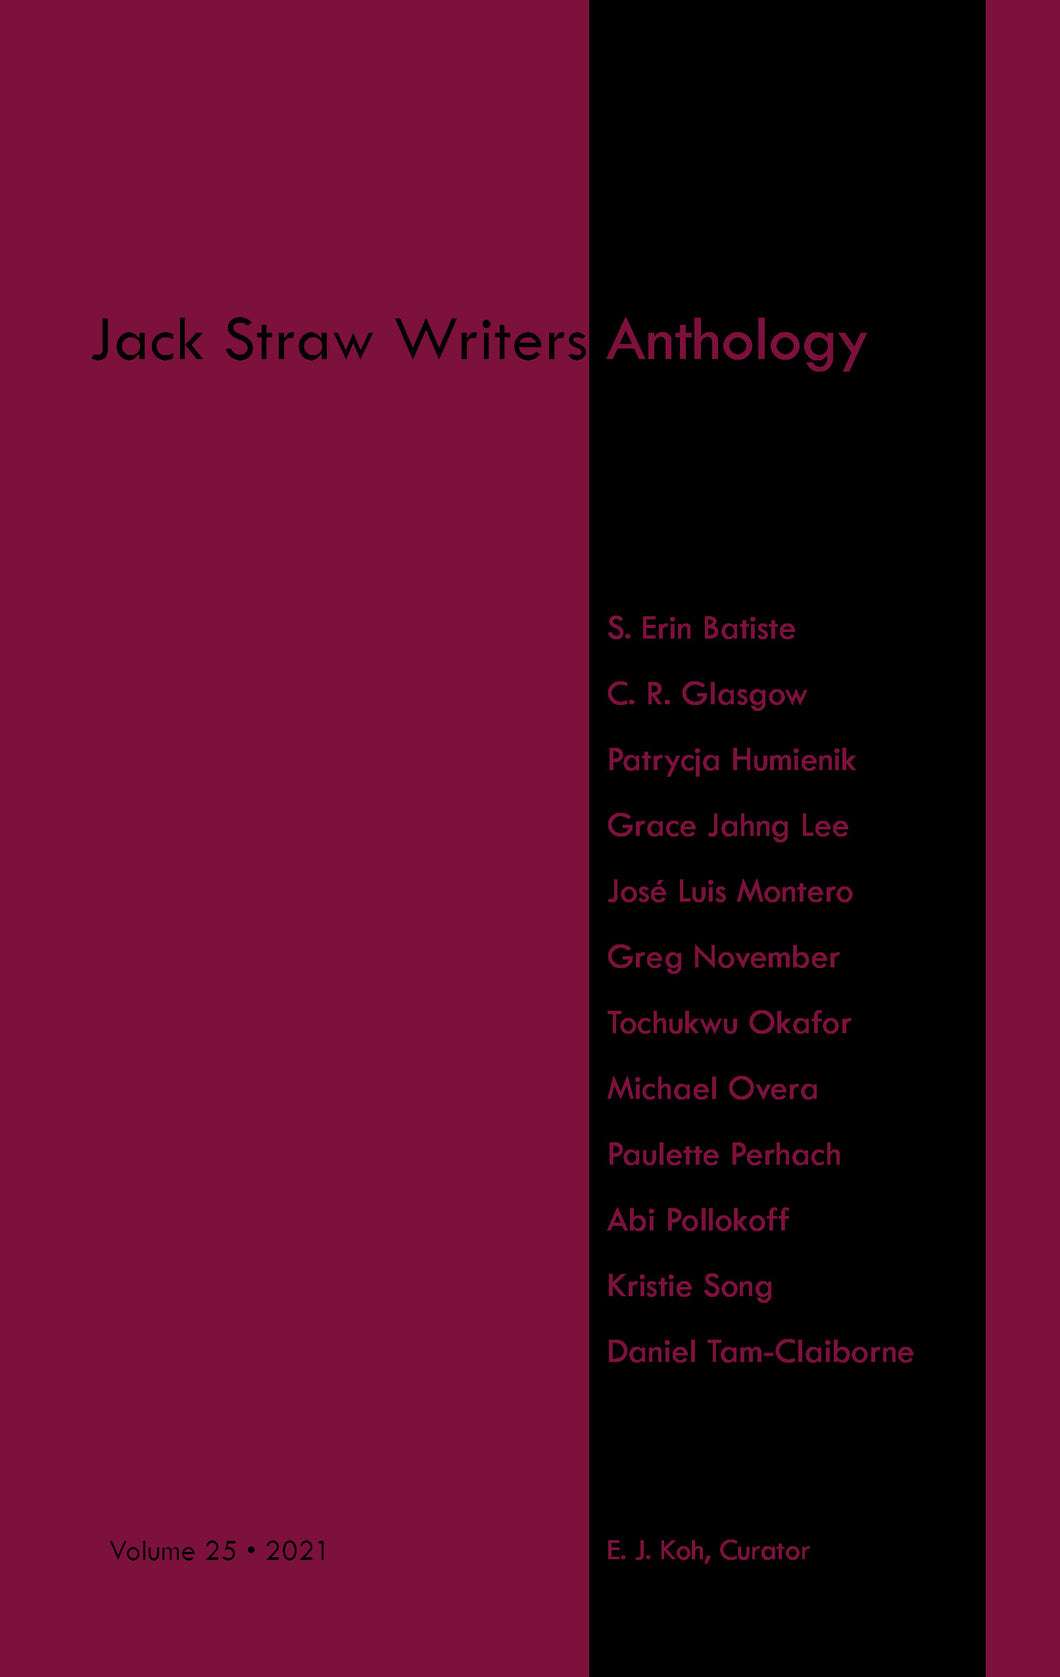 [05/07/2021] Jack Straw Writers Anthology Vol. 25 curated by E. J. Koh